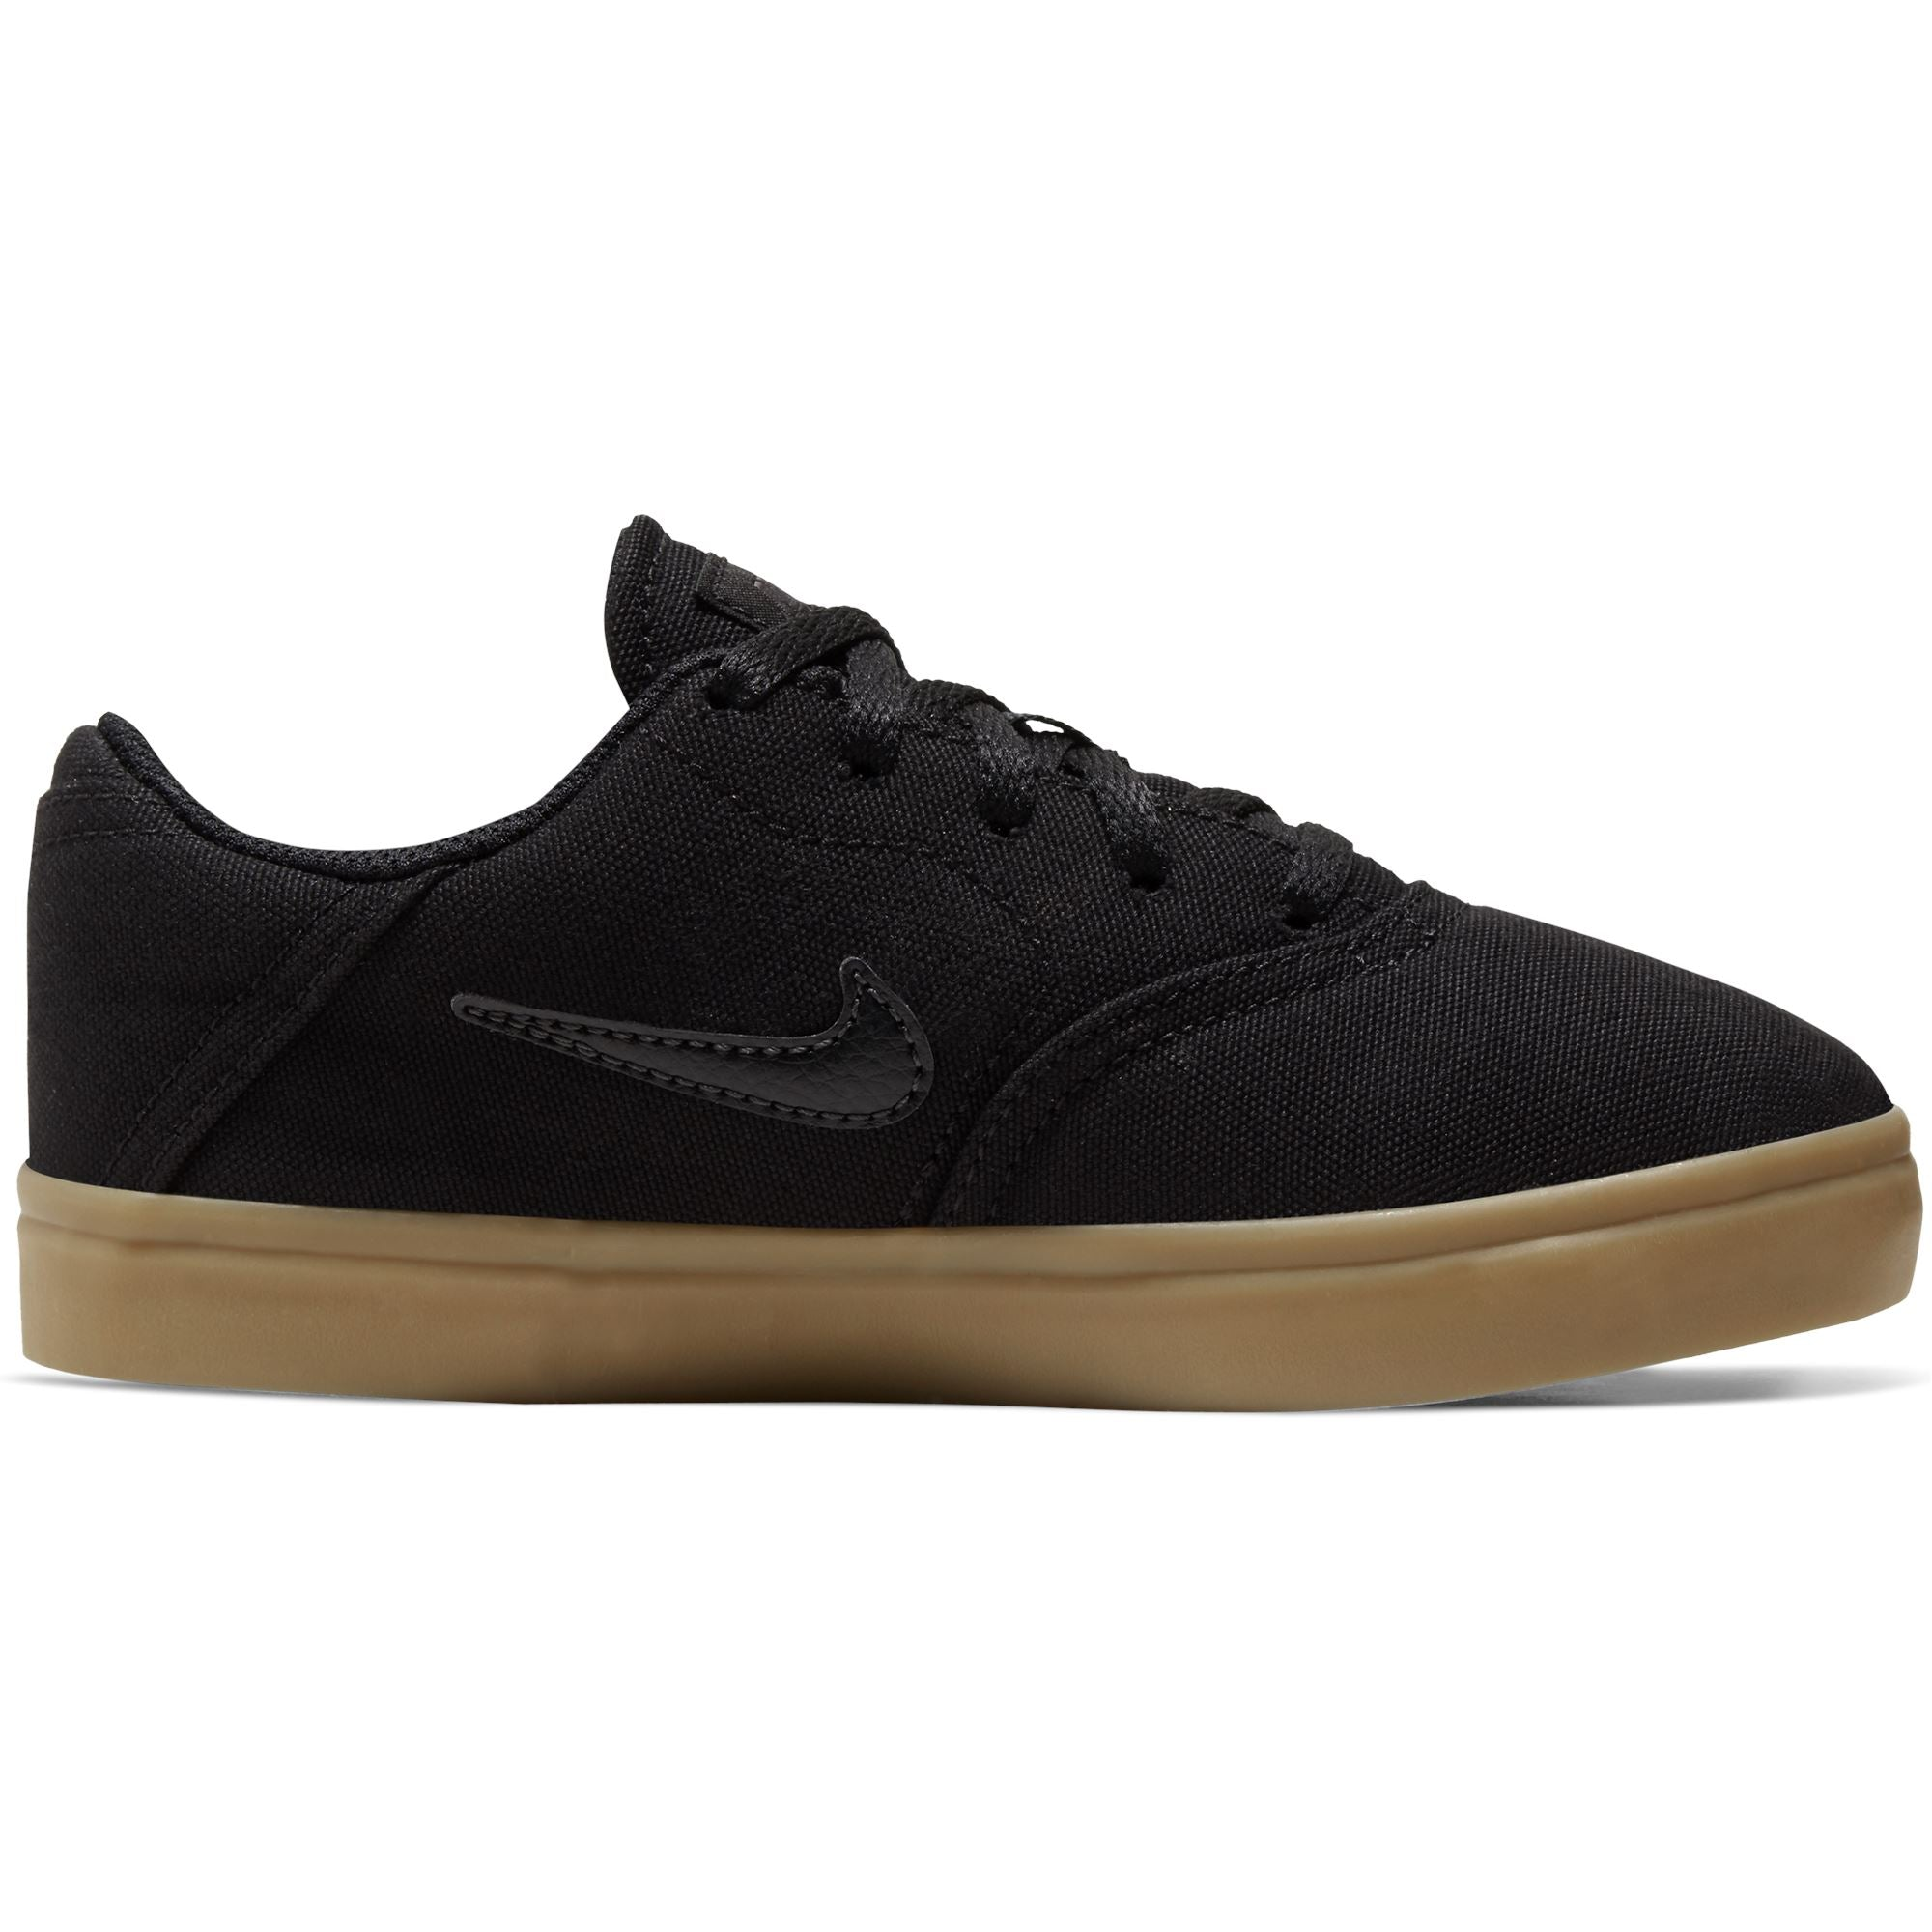 Nike Mens Sb Check Canvas - Black/Black-Gum Light Brown SP-Footwear-Mens Nike